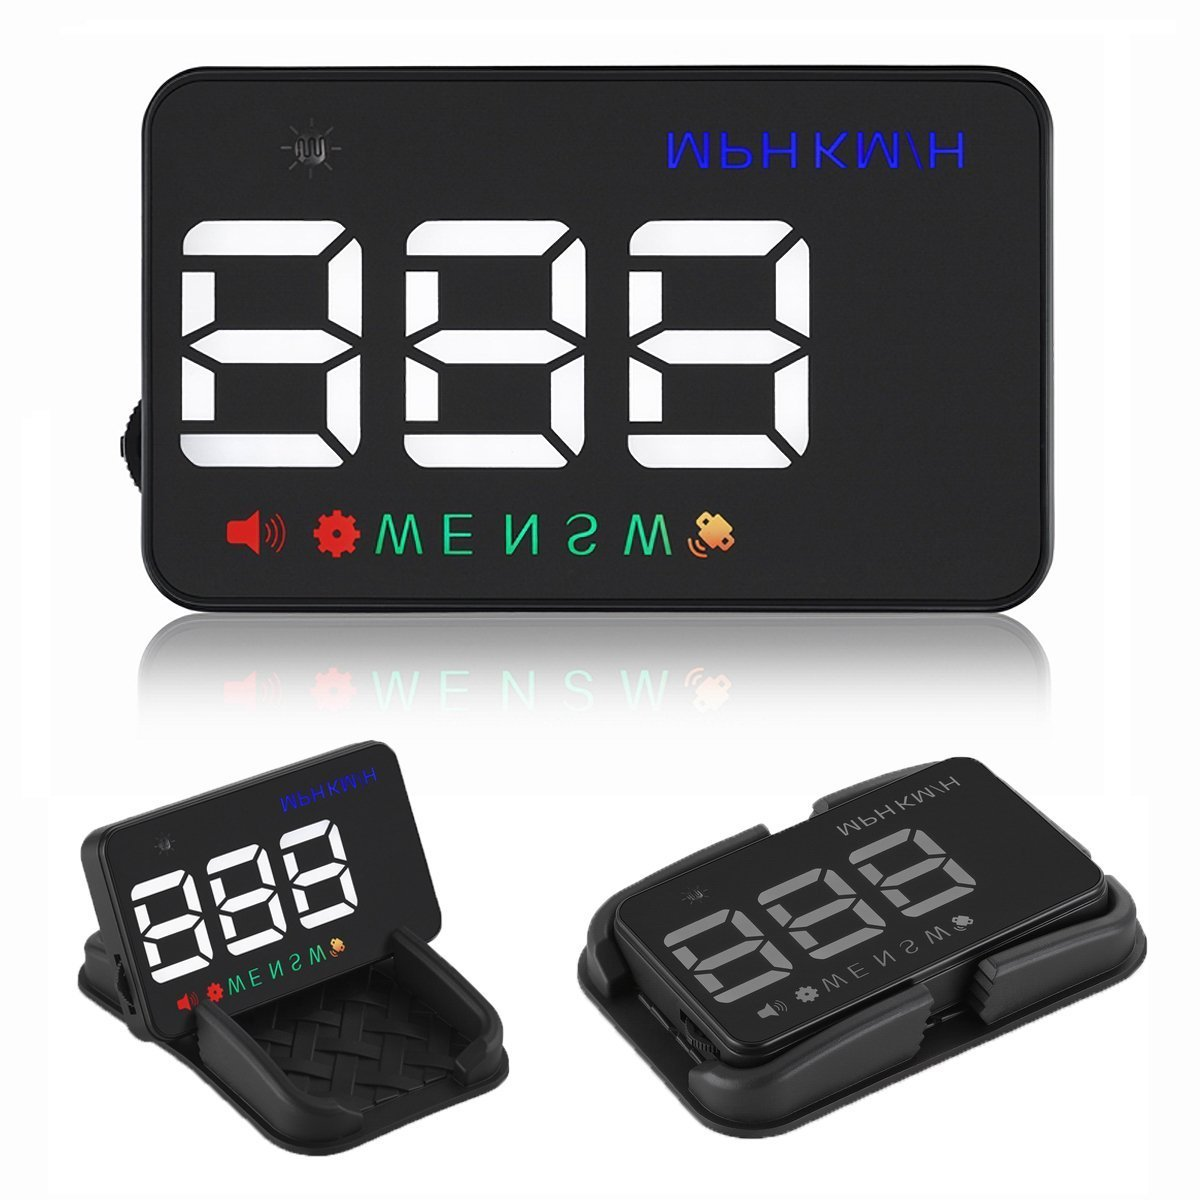 Heads up Display Cars Universal GPS Speedometer 3.5 inch HUD Digital Car Compass with Cigarette Lighter Port, Speed, Compass, Over Speed Alarm, KMH/MPH, Windshield Projector with Film for 12V All Cars